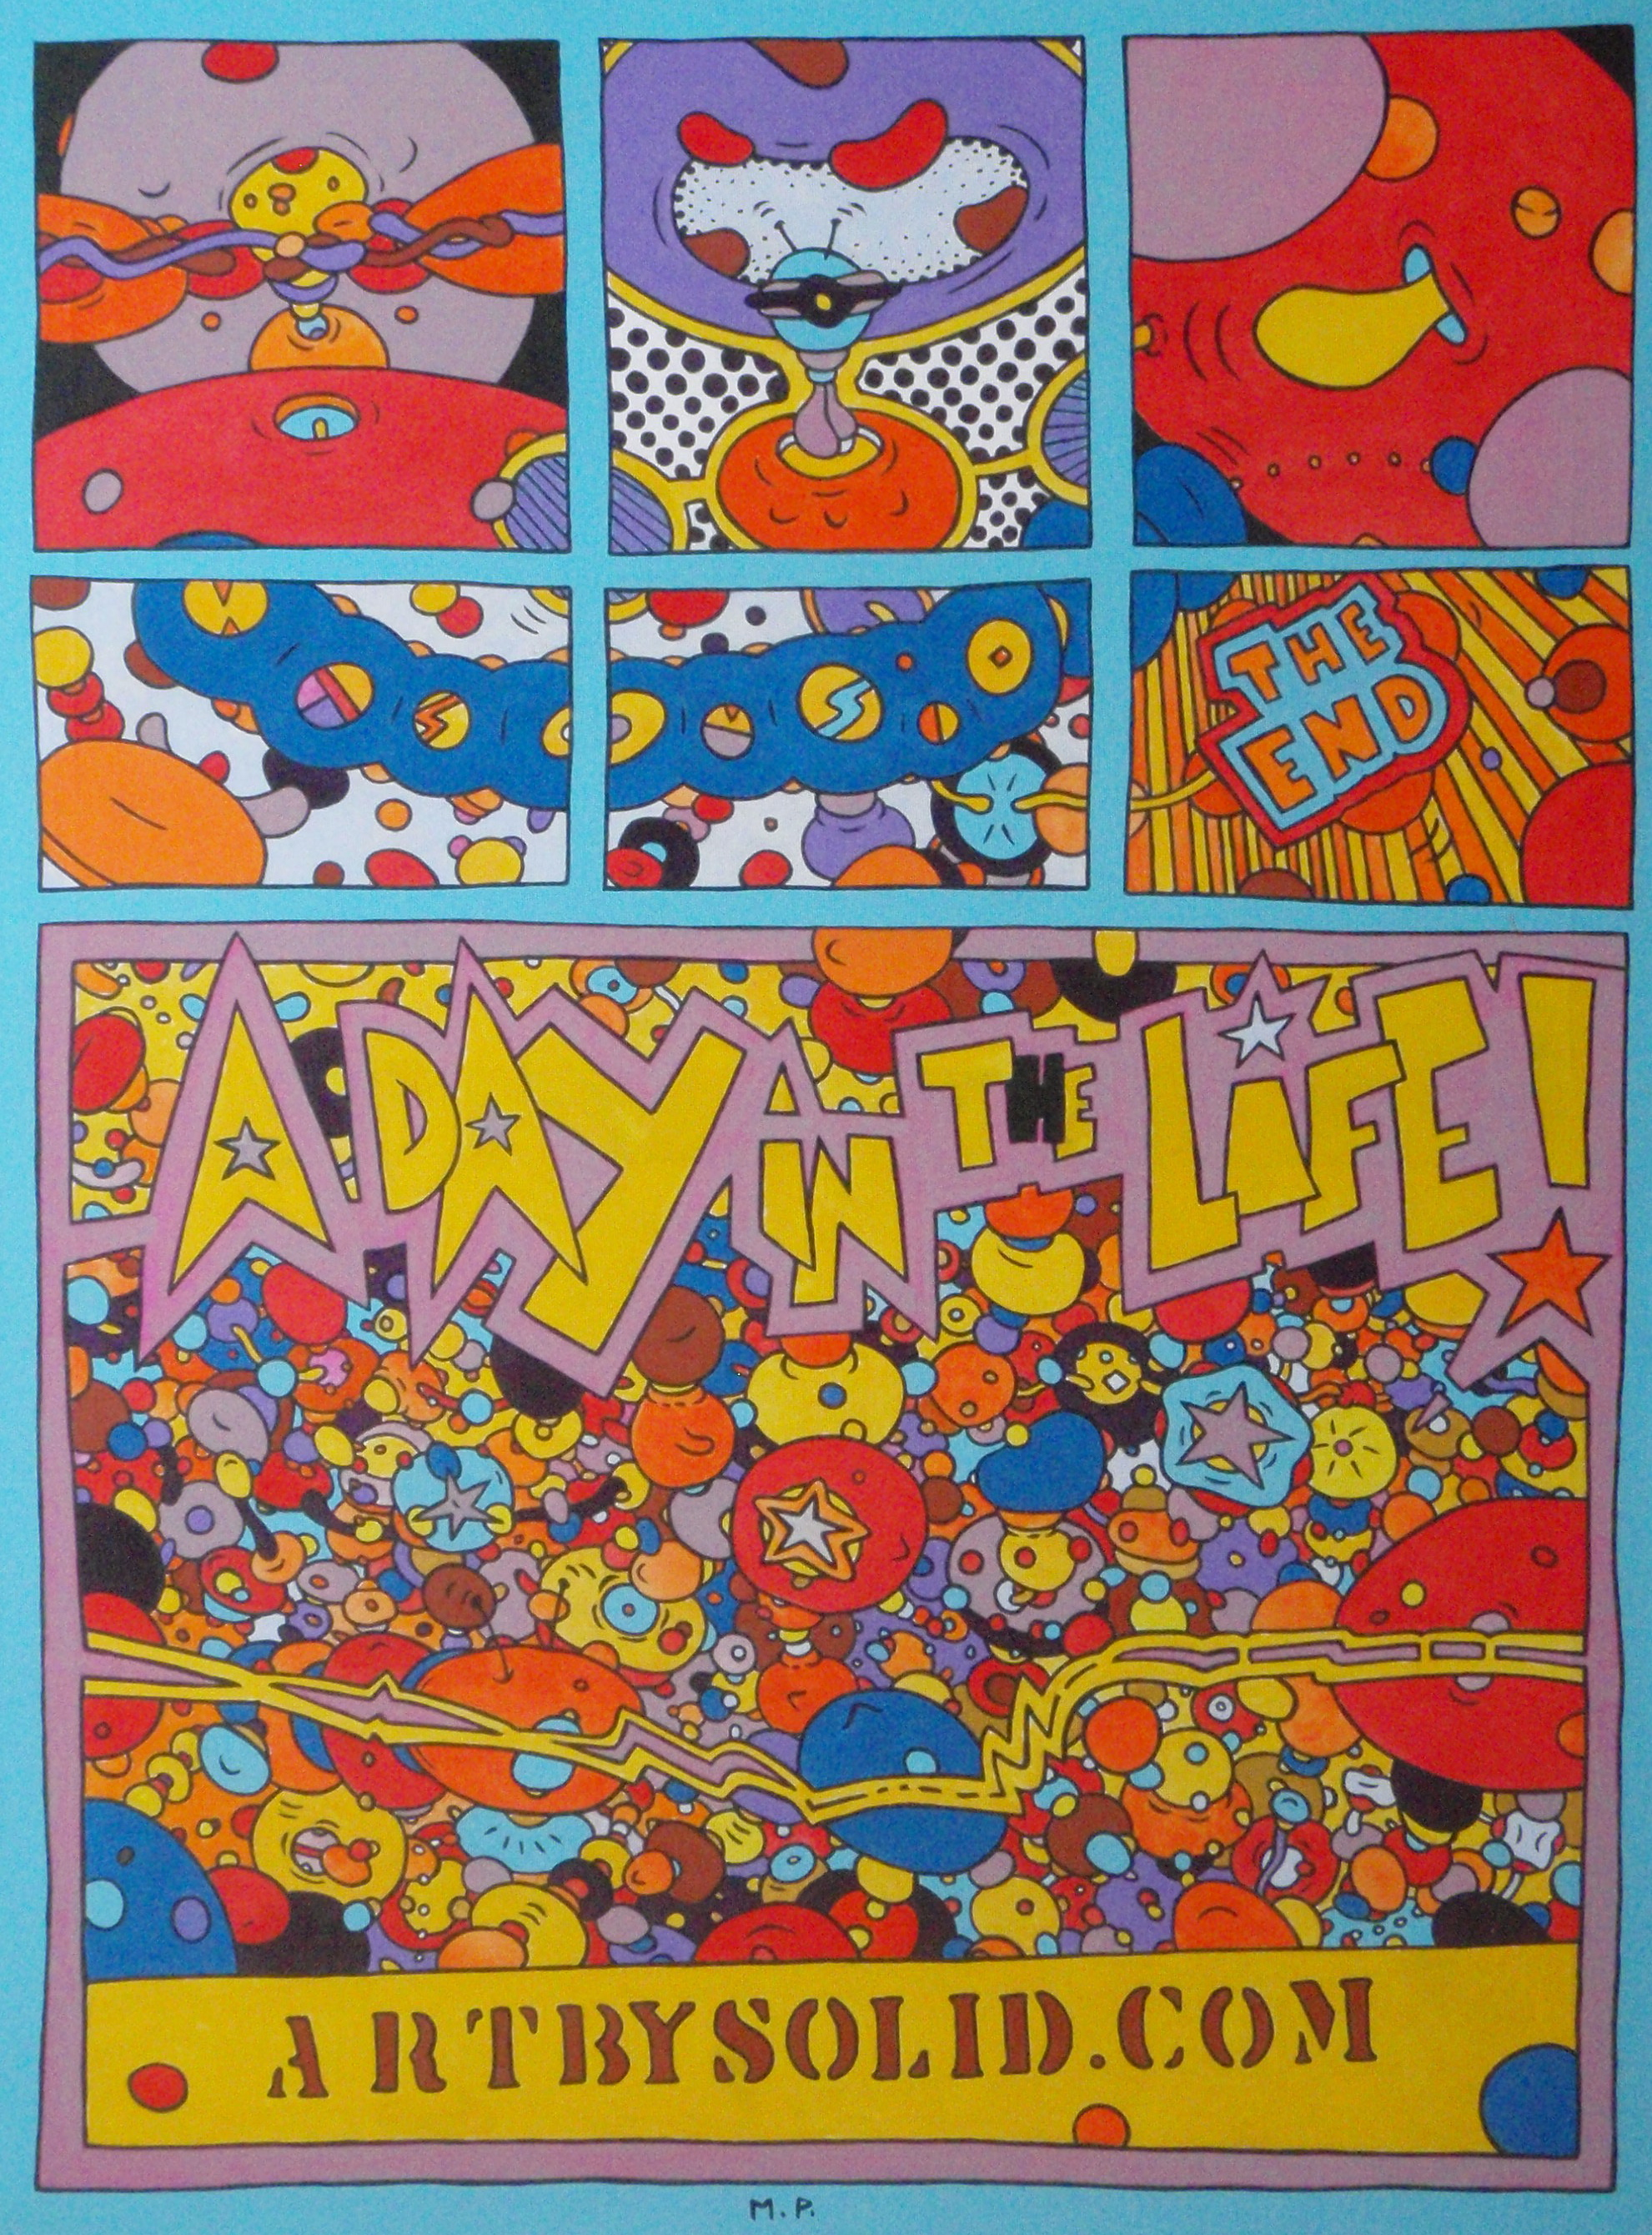 A Day In The Life (80x60)